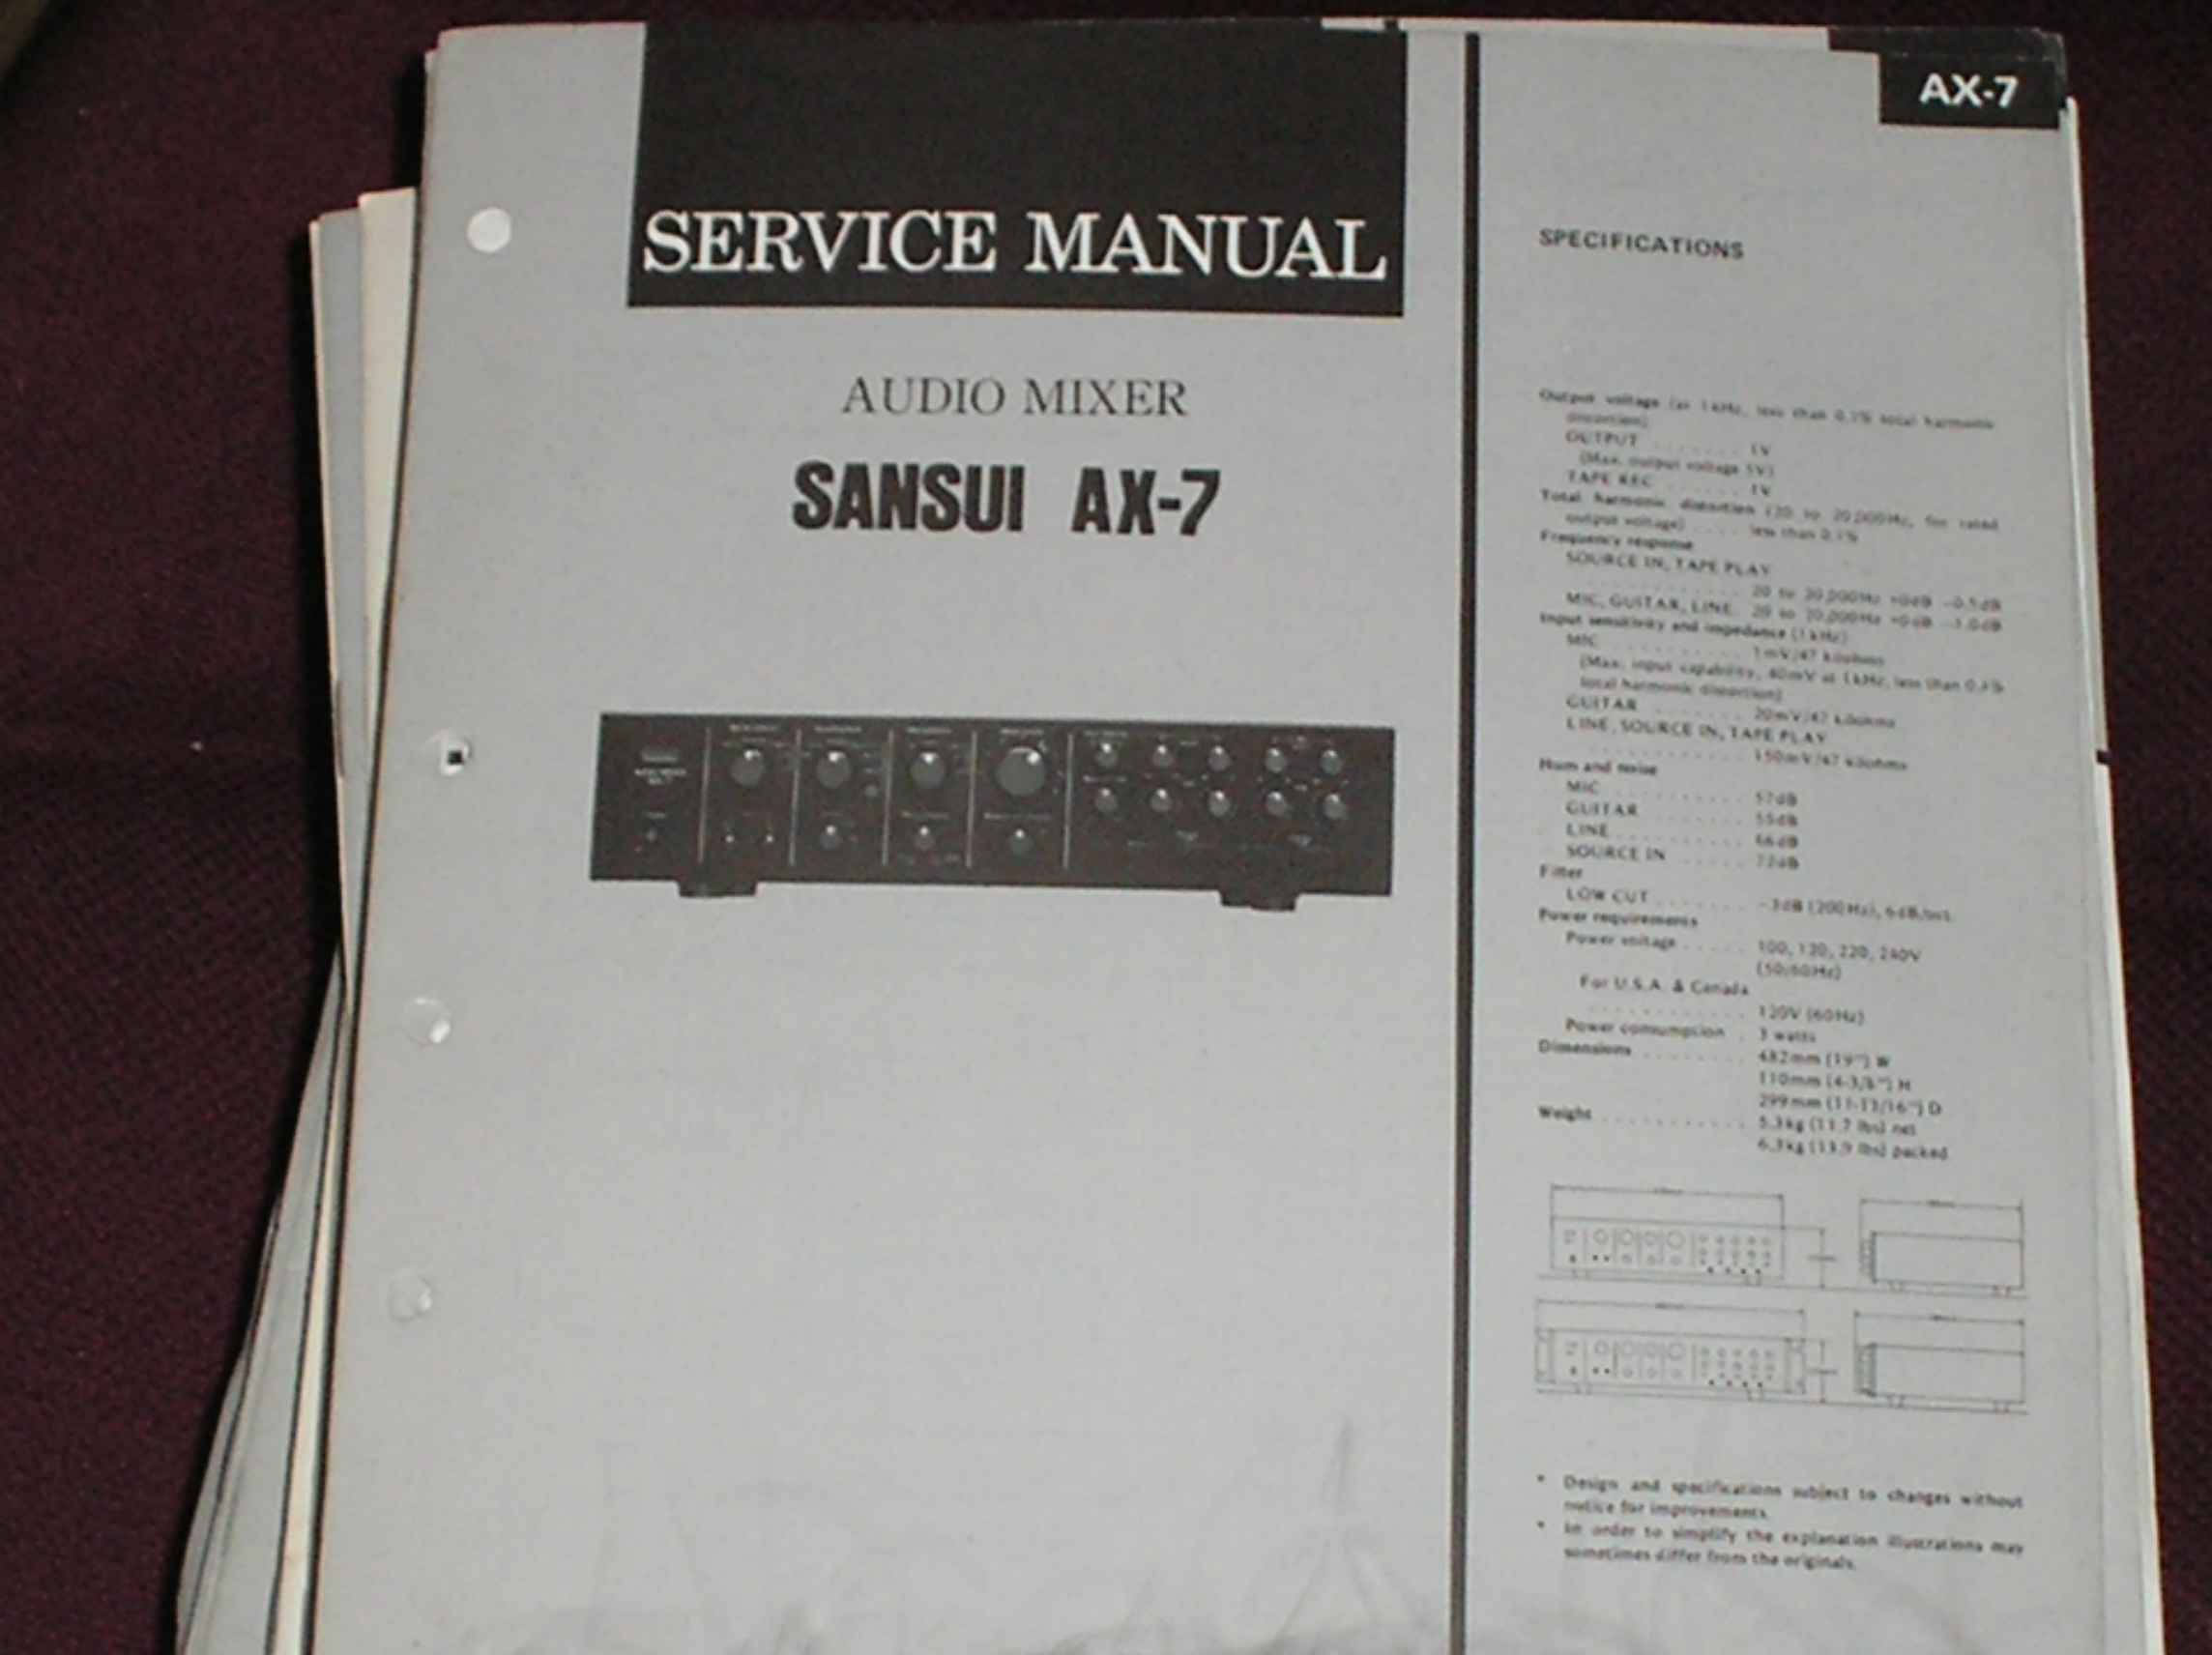 AX-7 Audio Mixer Service Manual